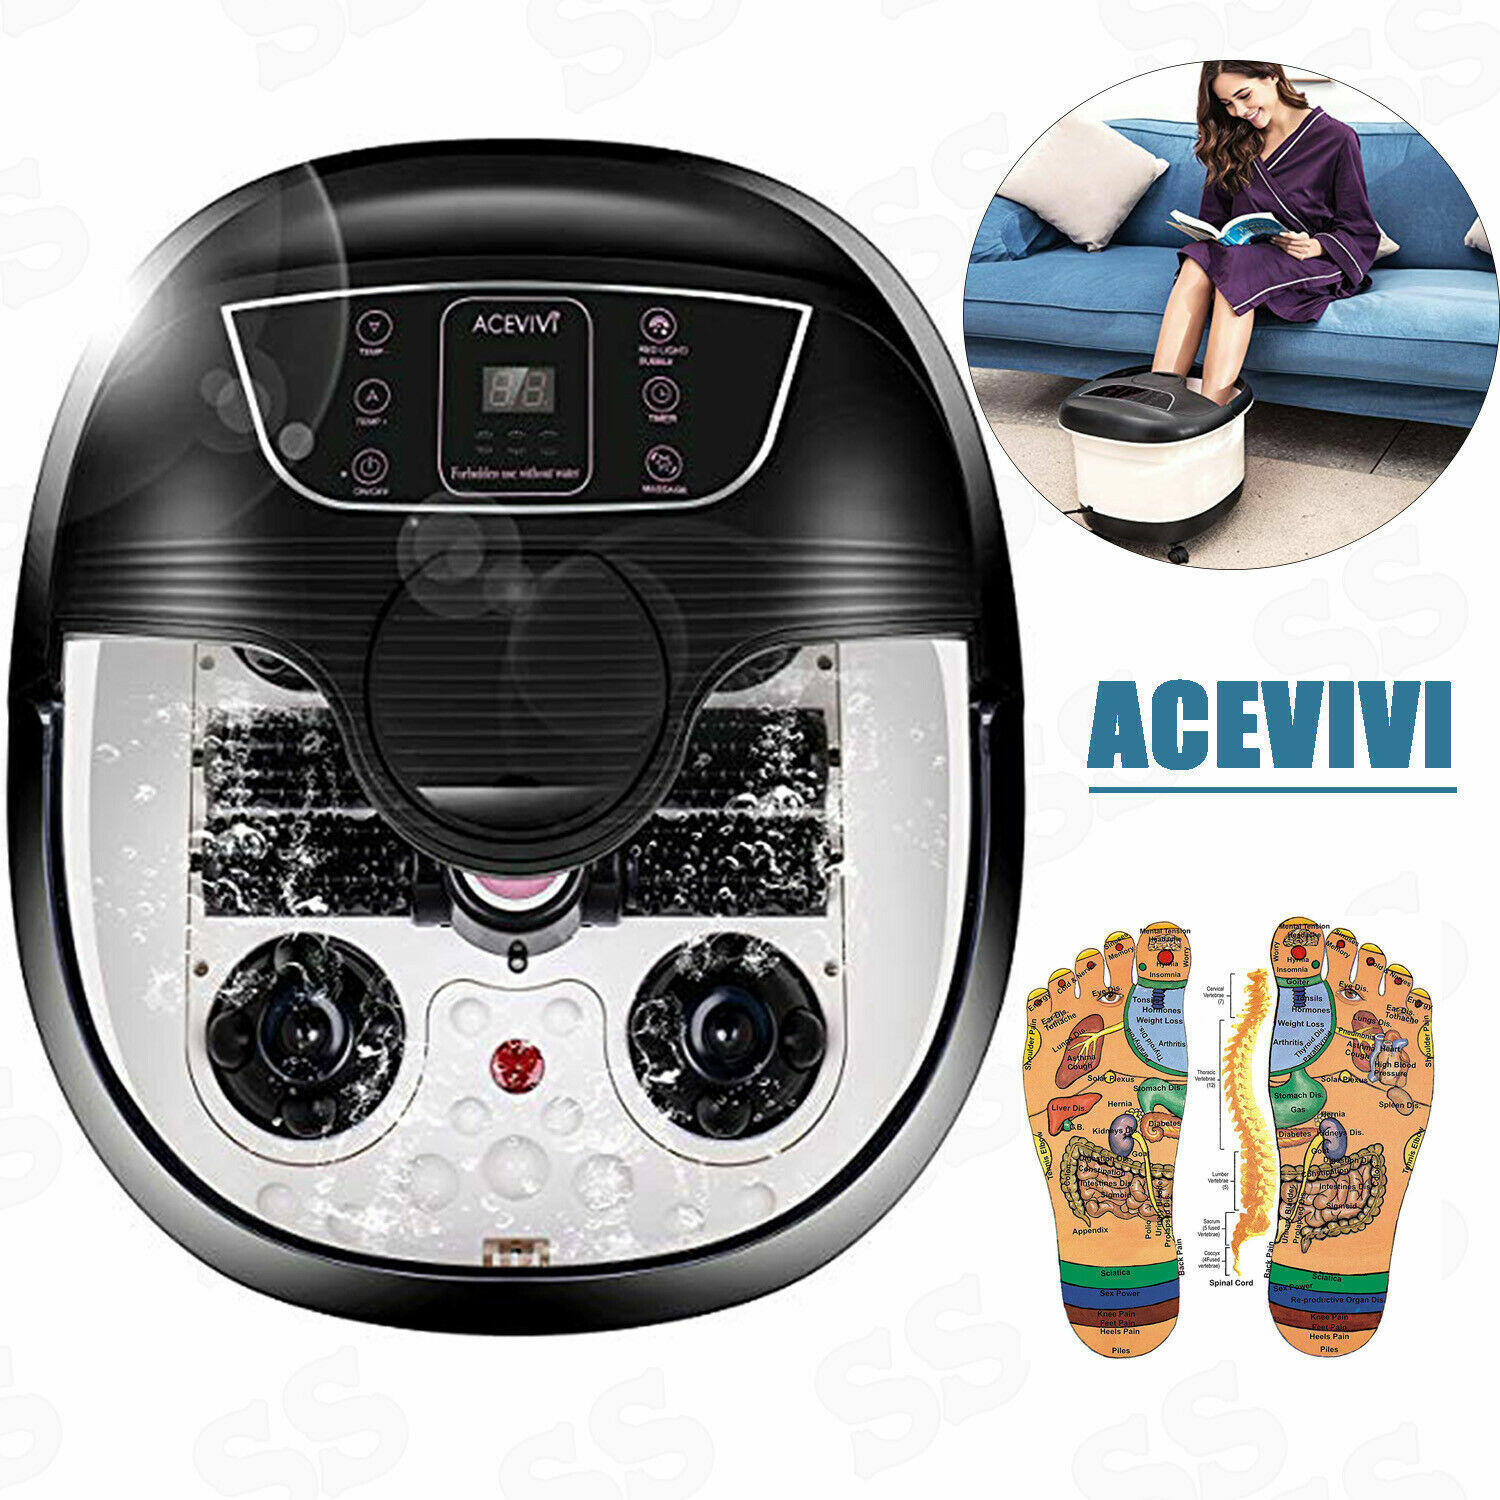 All in One Foot Spa Bath Massager with Heat, Motorized Shiat